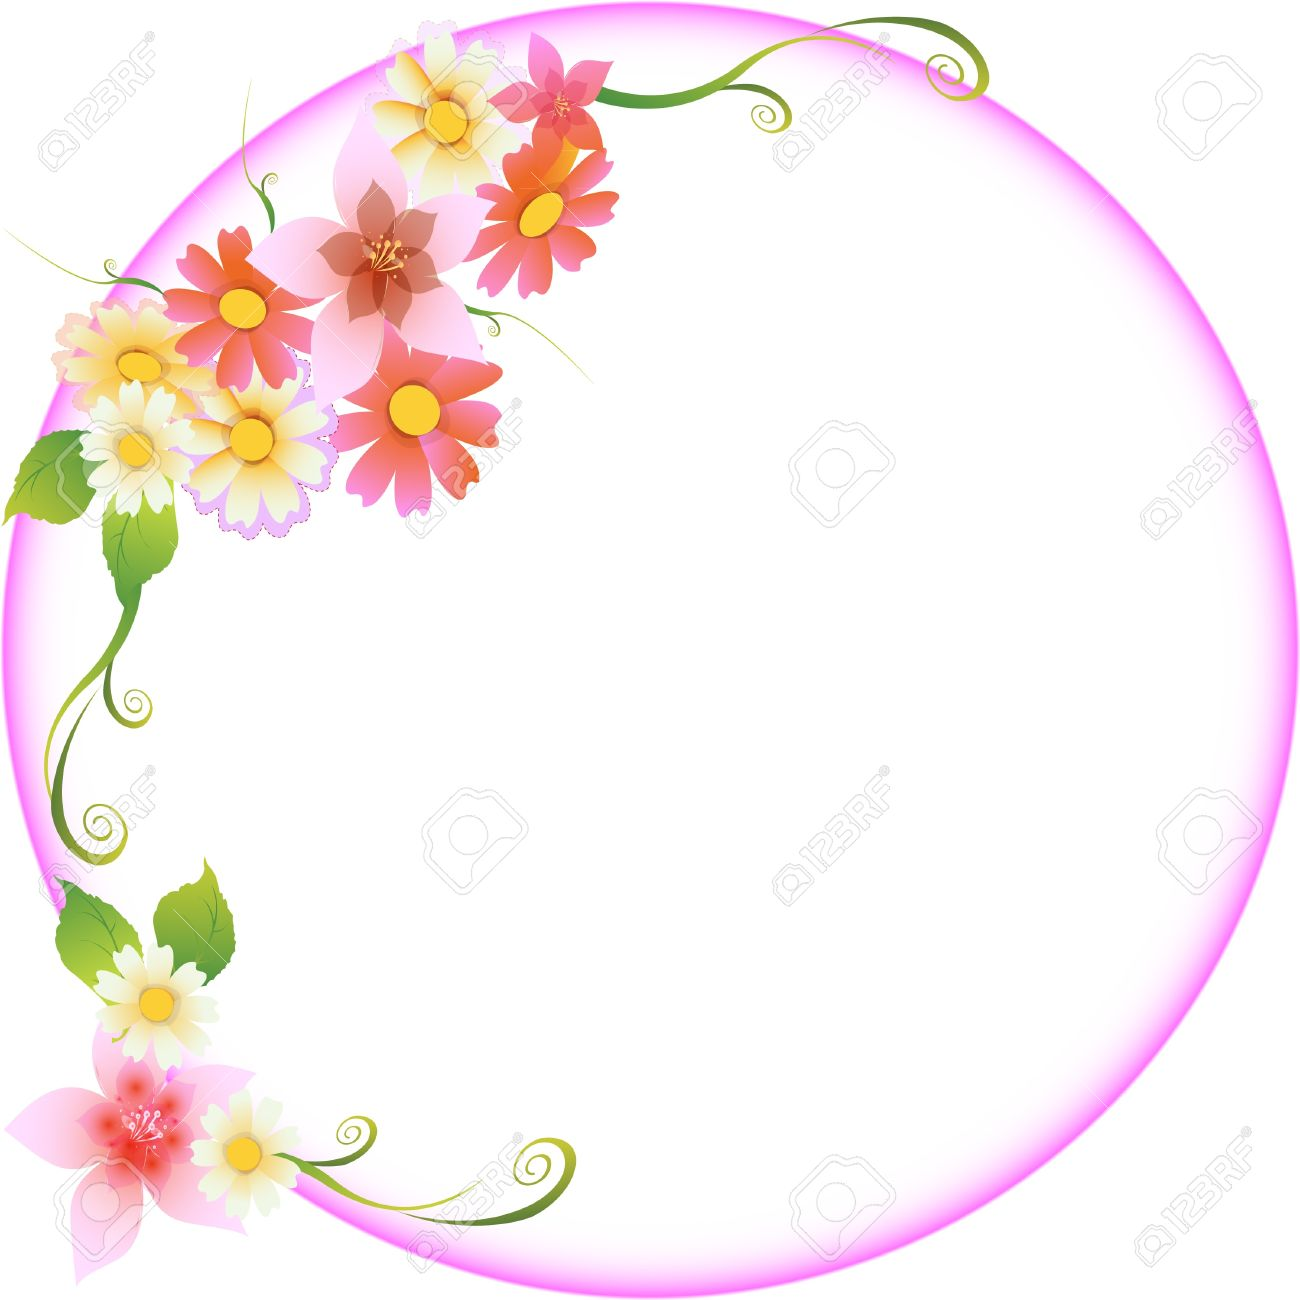 Floral Wedding Frame Royalty Free Cliparts, Vectors, And Stock ...